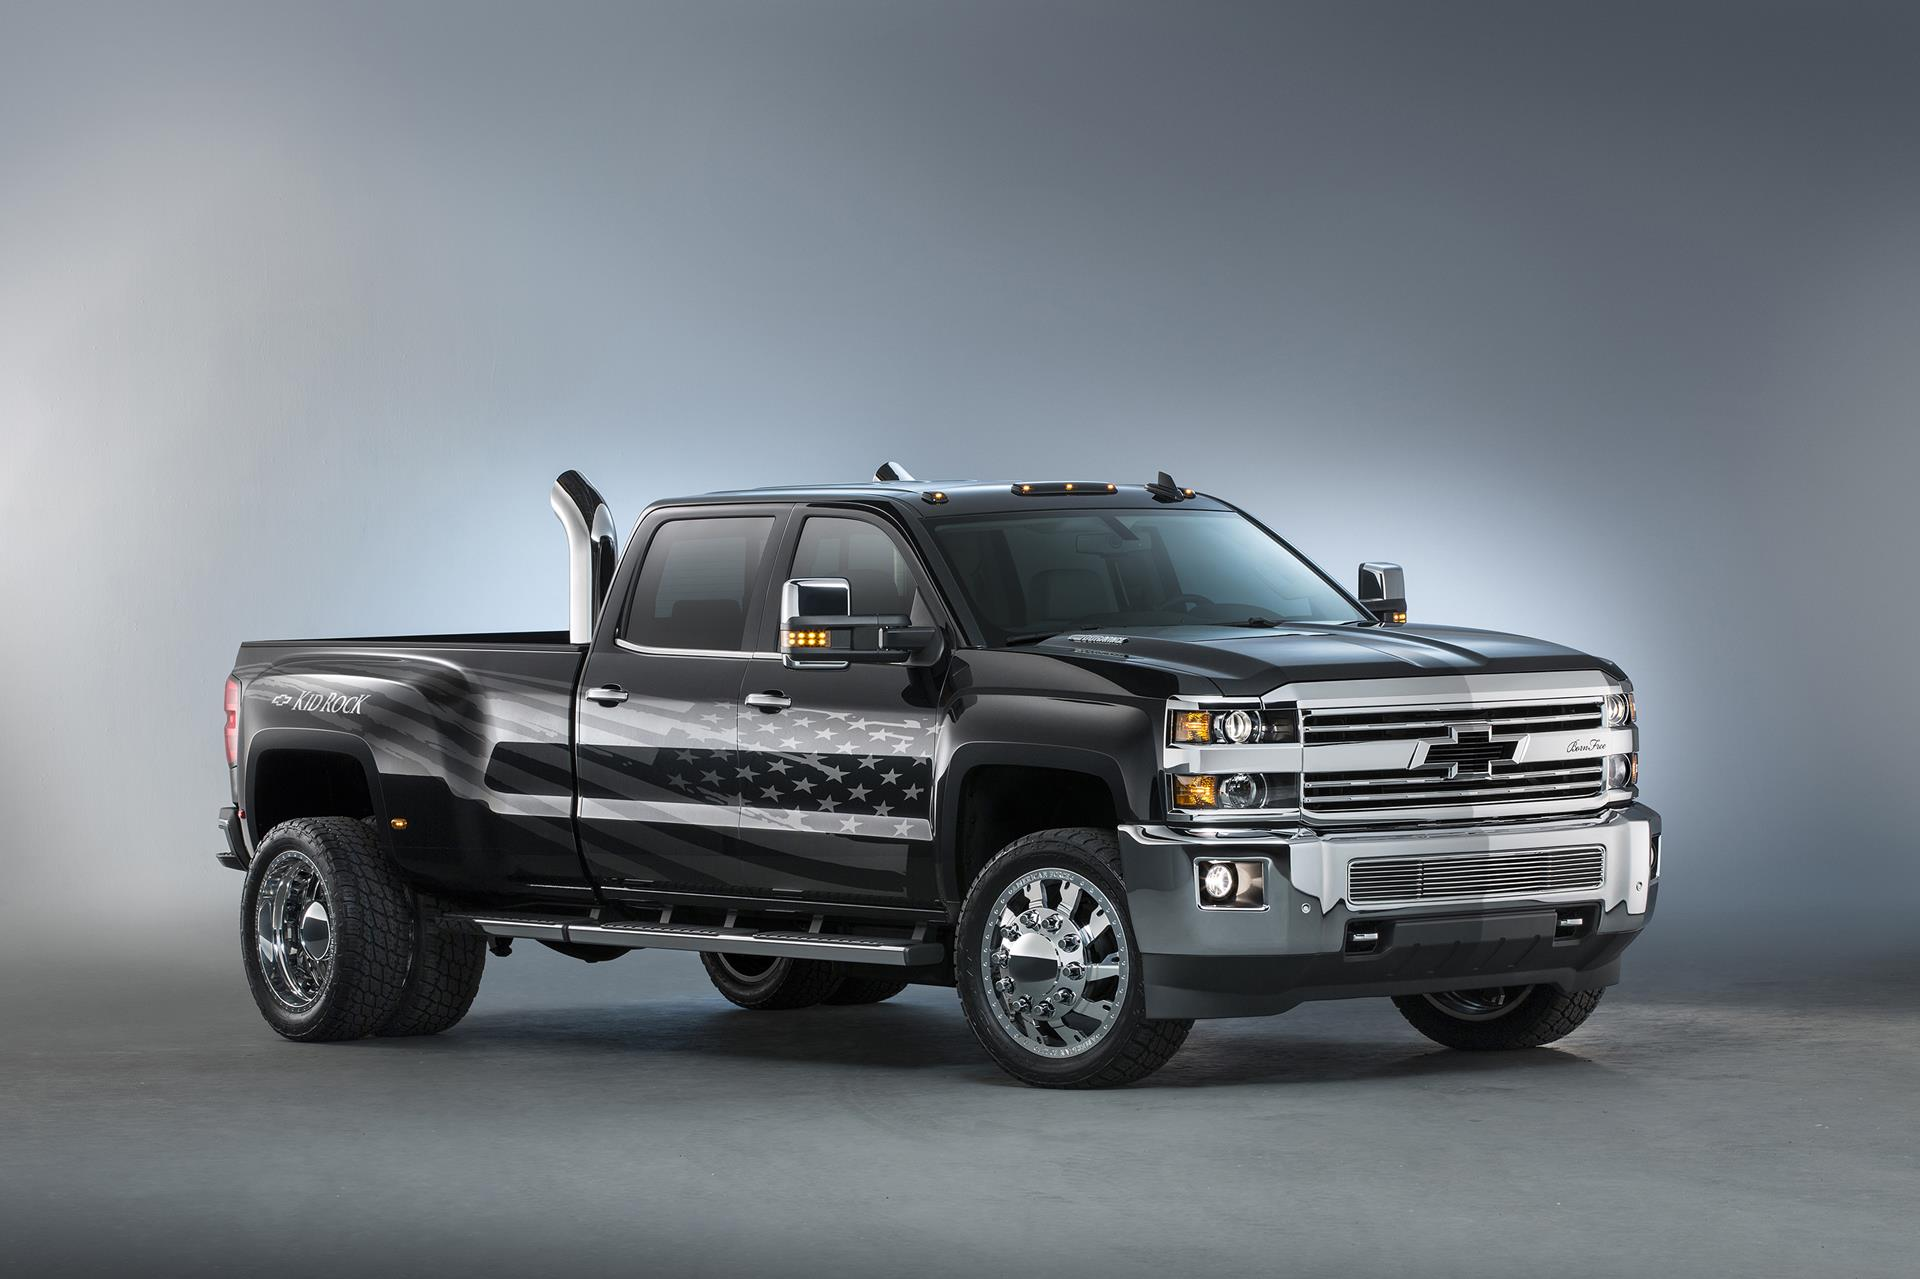 2015 chevrolet silverado 3500hd kid rock concept news and information. Black Bedroom Furniture Sets. Home Design Ideas